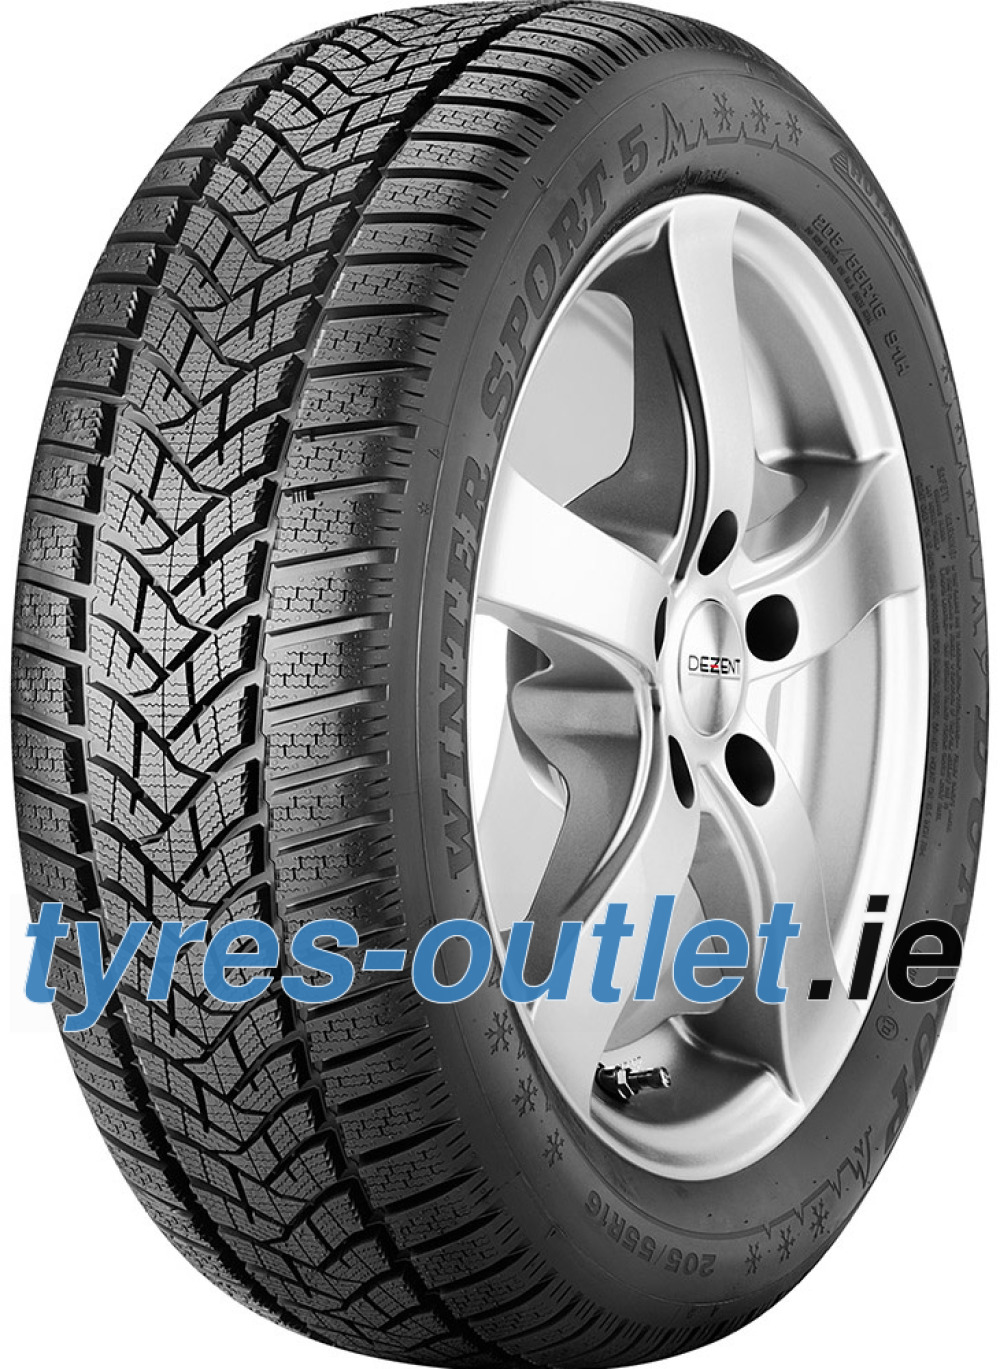 Dunlop Winter Sport 5 ( 245/45 R17 99V XL , NST, with rim protection (MFS) )